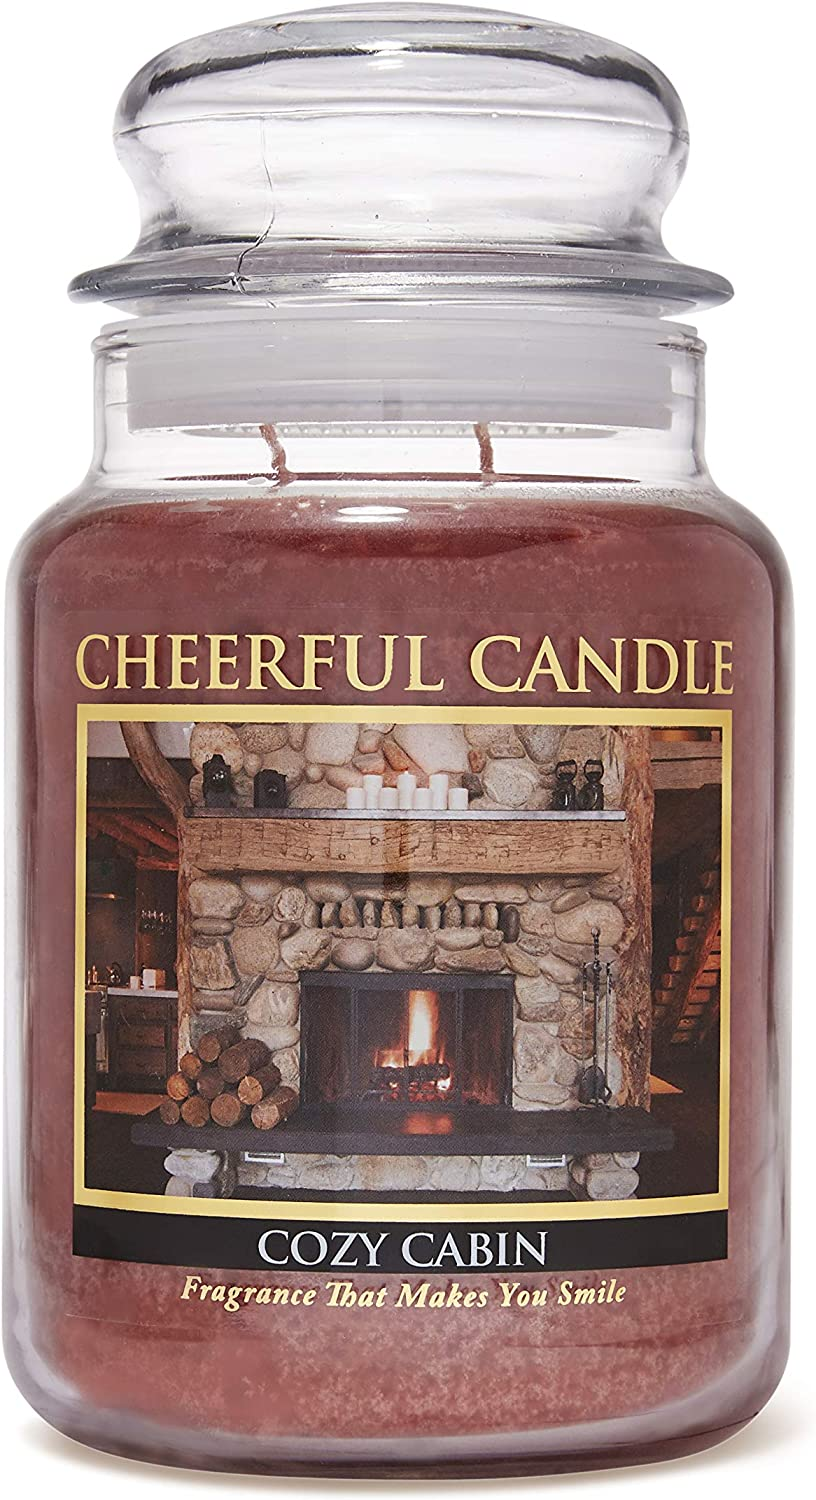 Cozy Cabin 16oz Soy Candle by Home Scents Candle Company